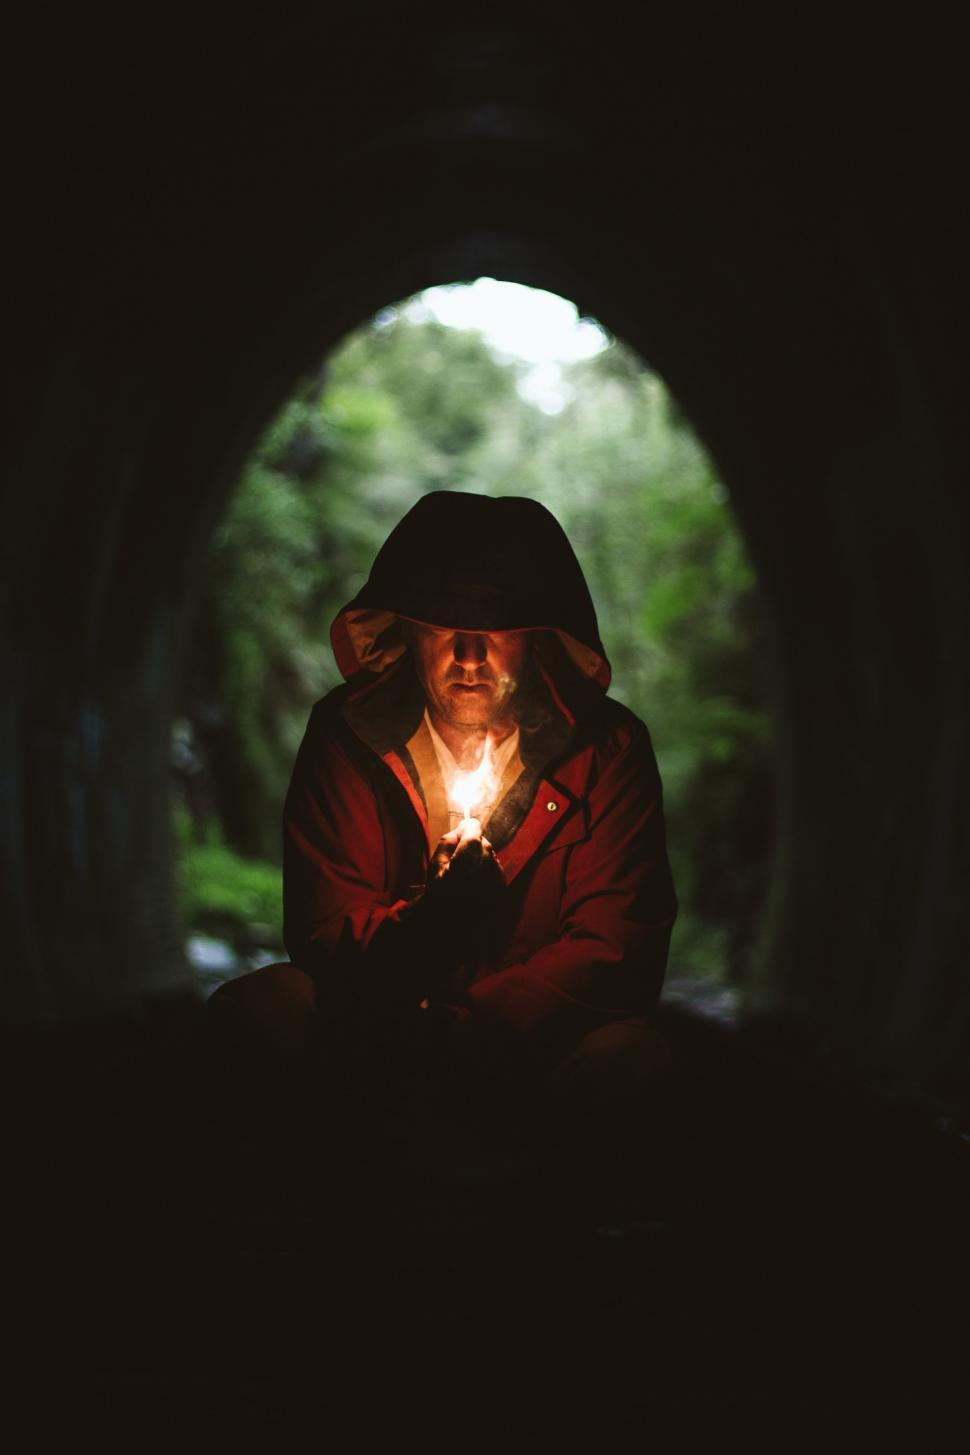 Download Free Stock HD Photo of Hooded Man in Cave with candle light  Online